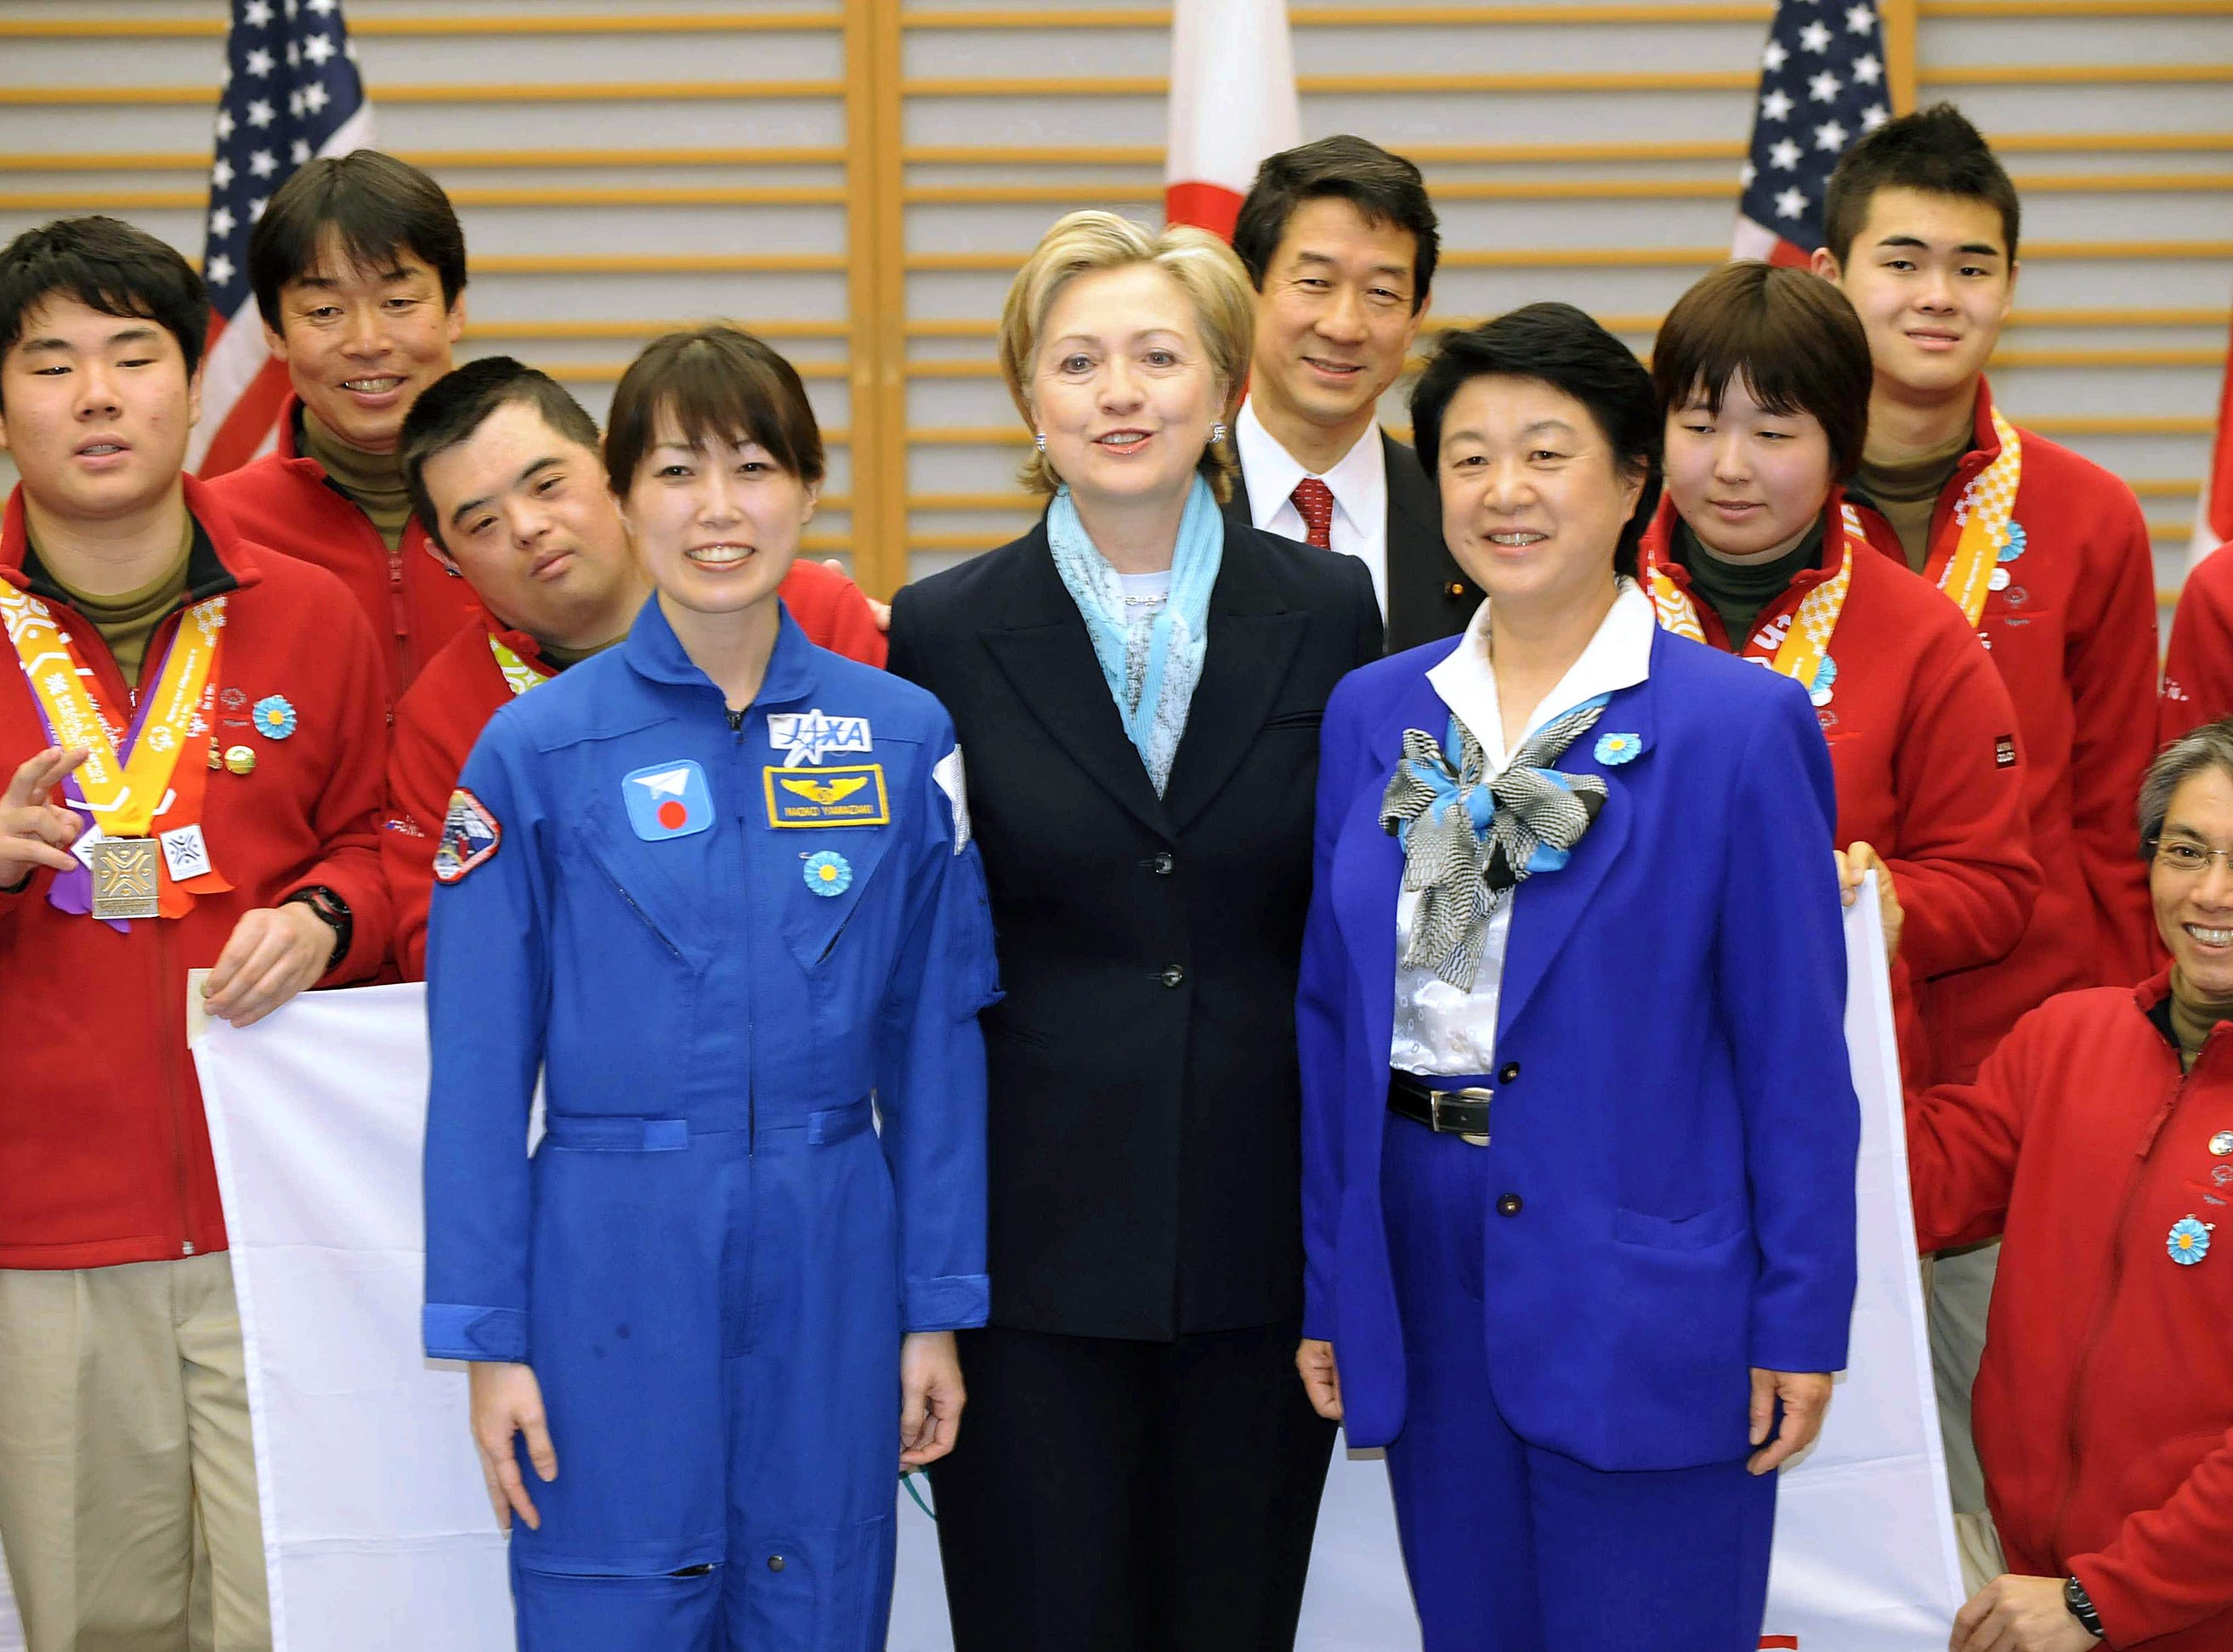 Secretary of State Hillary Rodham Clinton, center, poses with Naoko Yamazaki, left in blue, the second Japanese woman to go into space, and Chiaki Mukai, right in blue, the first Japanese female astronaut, and athletes of the Special Olympics World Winter Games during a reception after her arrival at Haneda international airport in Tokyo, Japan, Monday, Feb. 16, 2009.